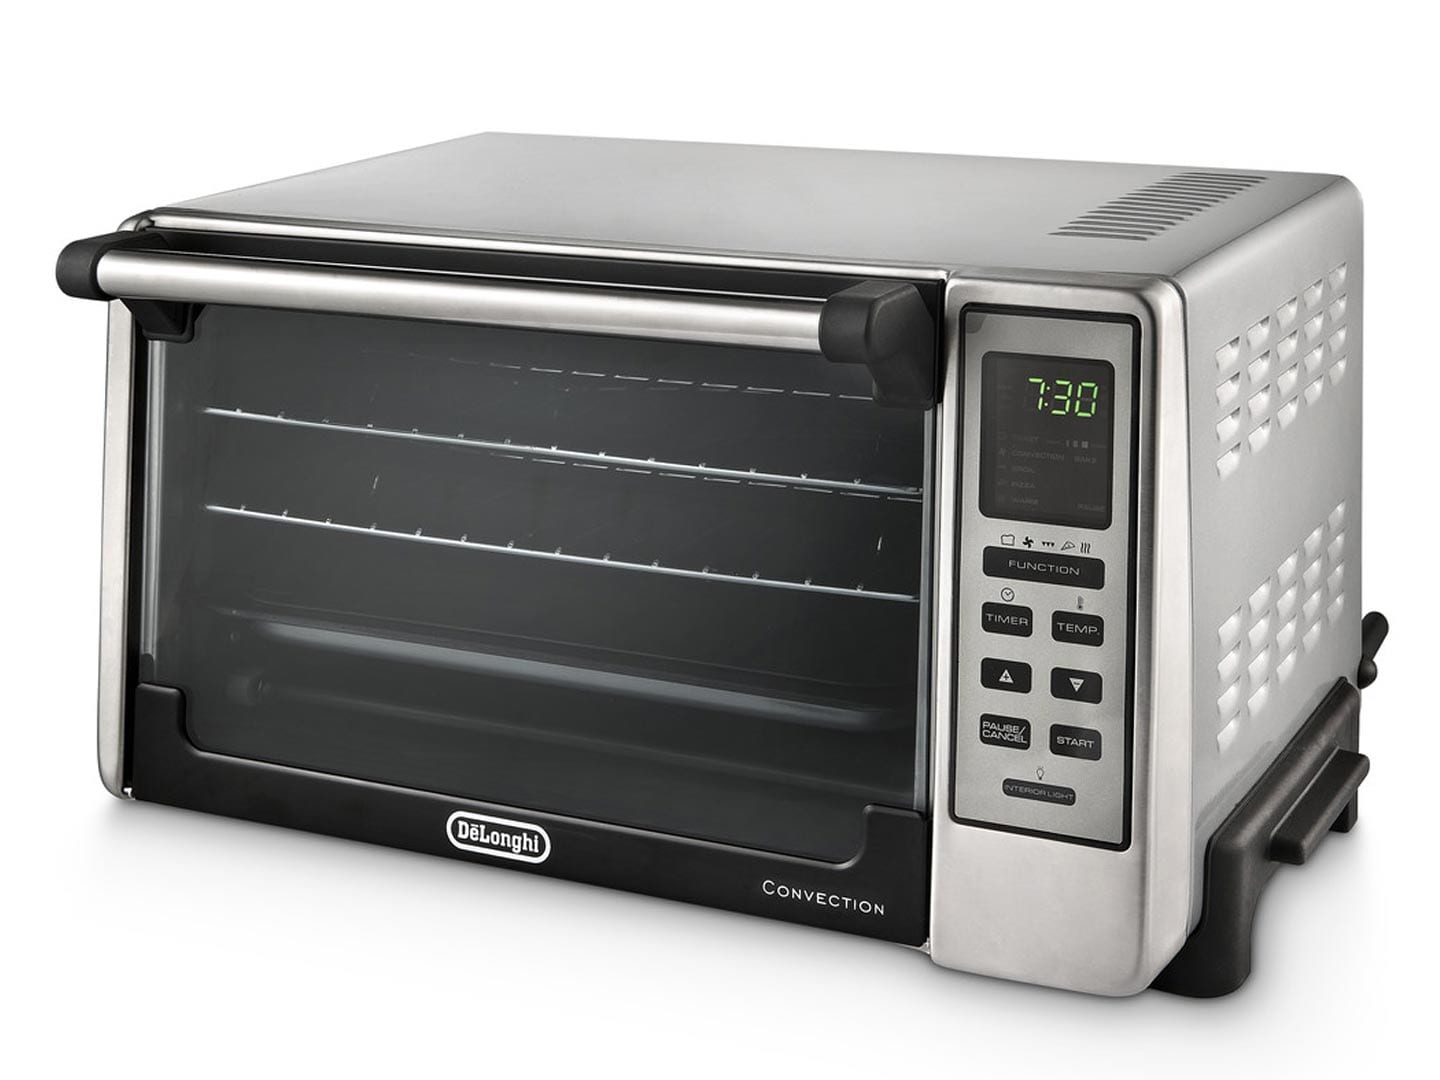 de longhi convection toaster oven do2058 de longhi us rh delonghi com Red Oster Toaster Oven Kenmore Toaster Oven